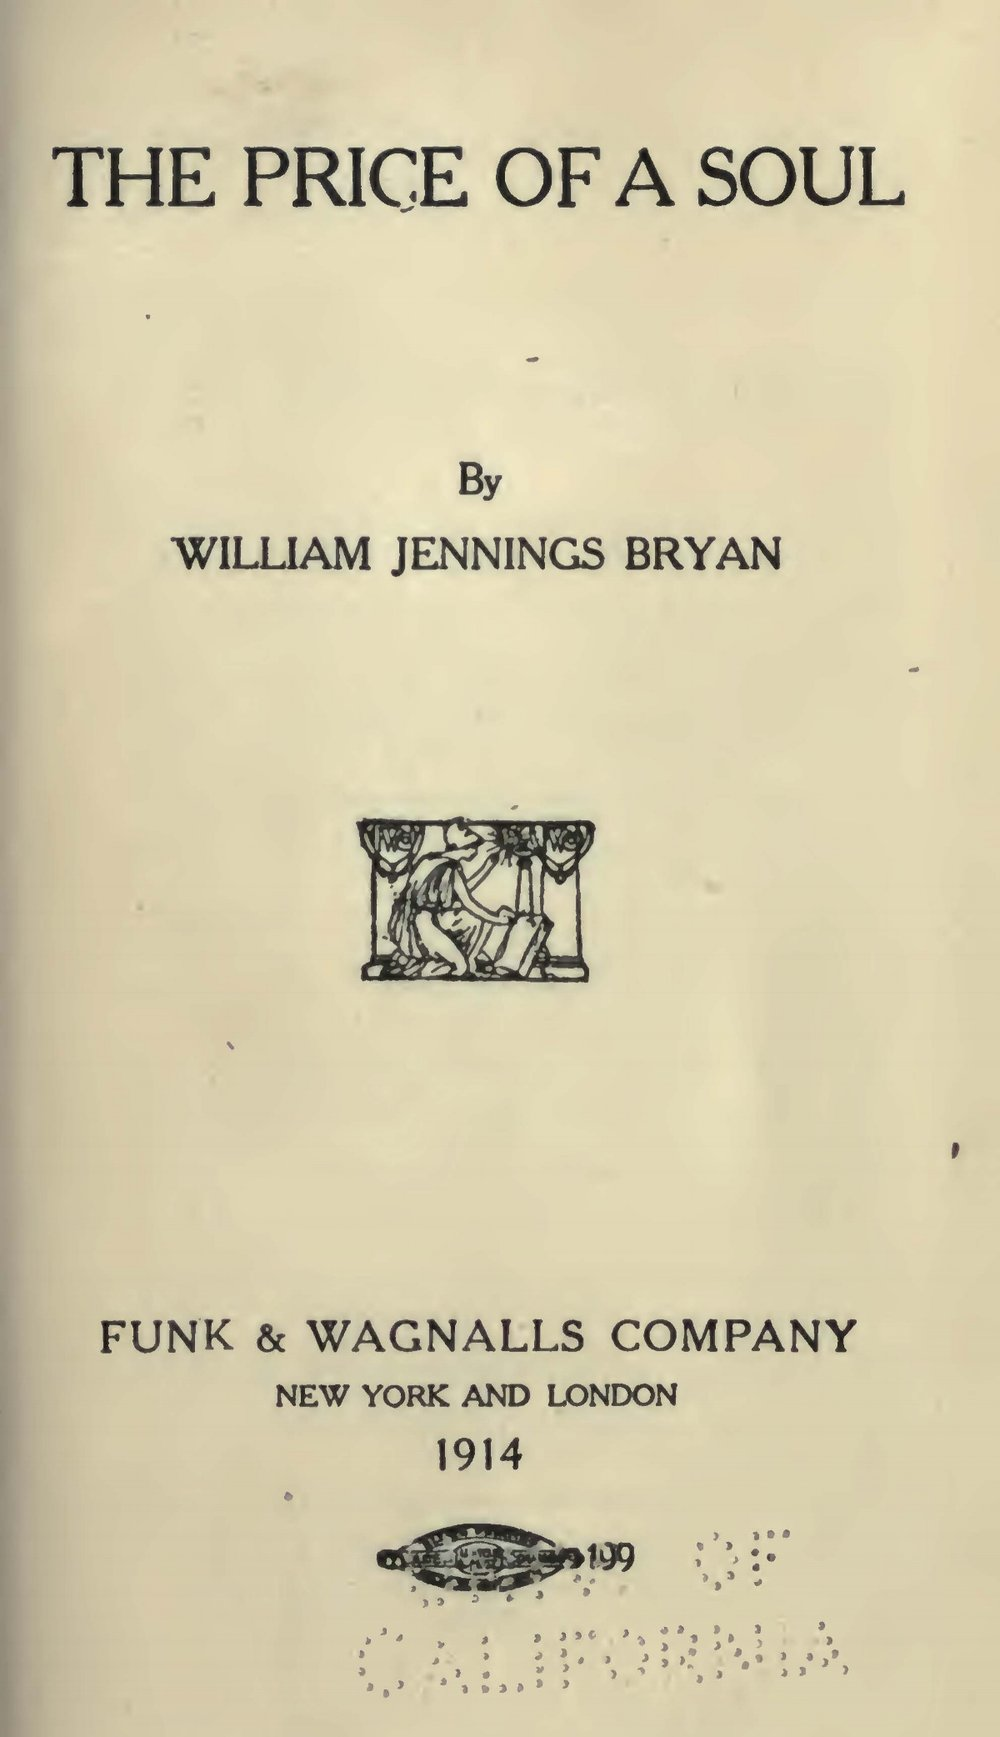 Bryan, Sr., William Jennings, The Price of a Soul Title Page.jpg